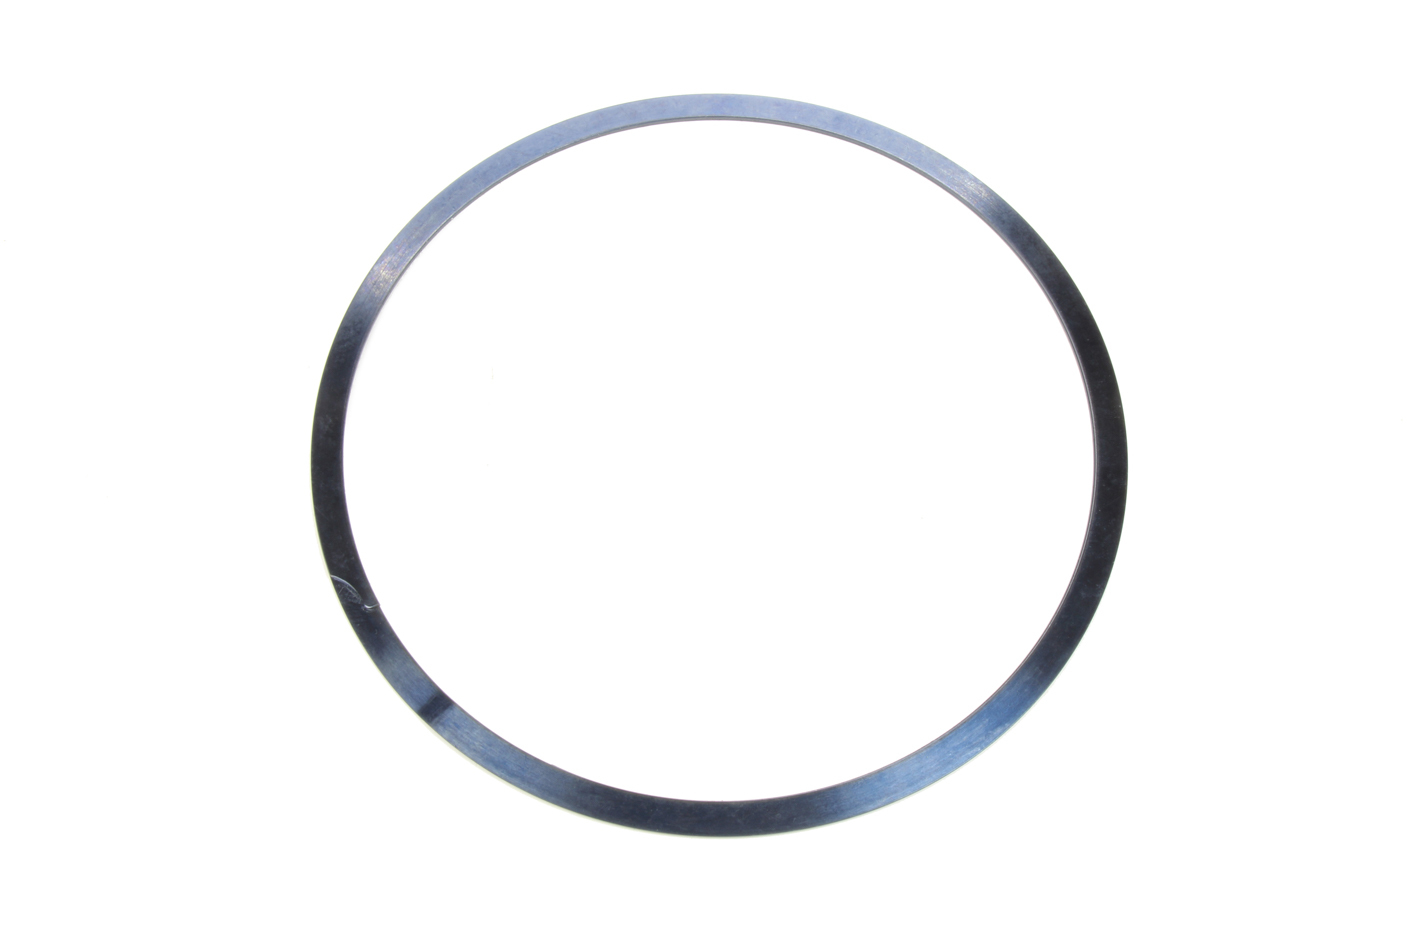 Replacement V3 Disc Attaching Ring